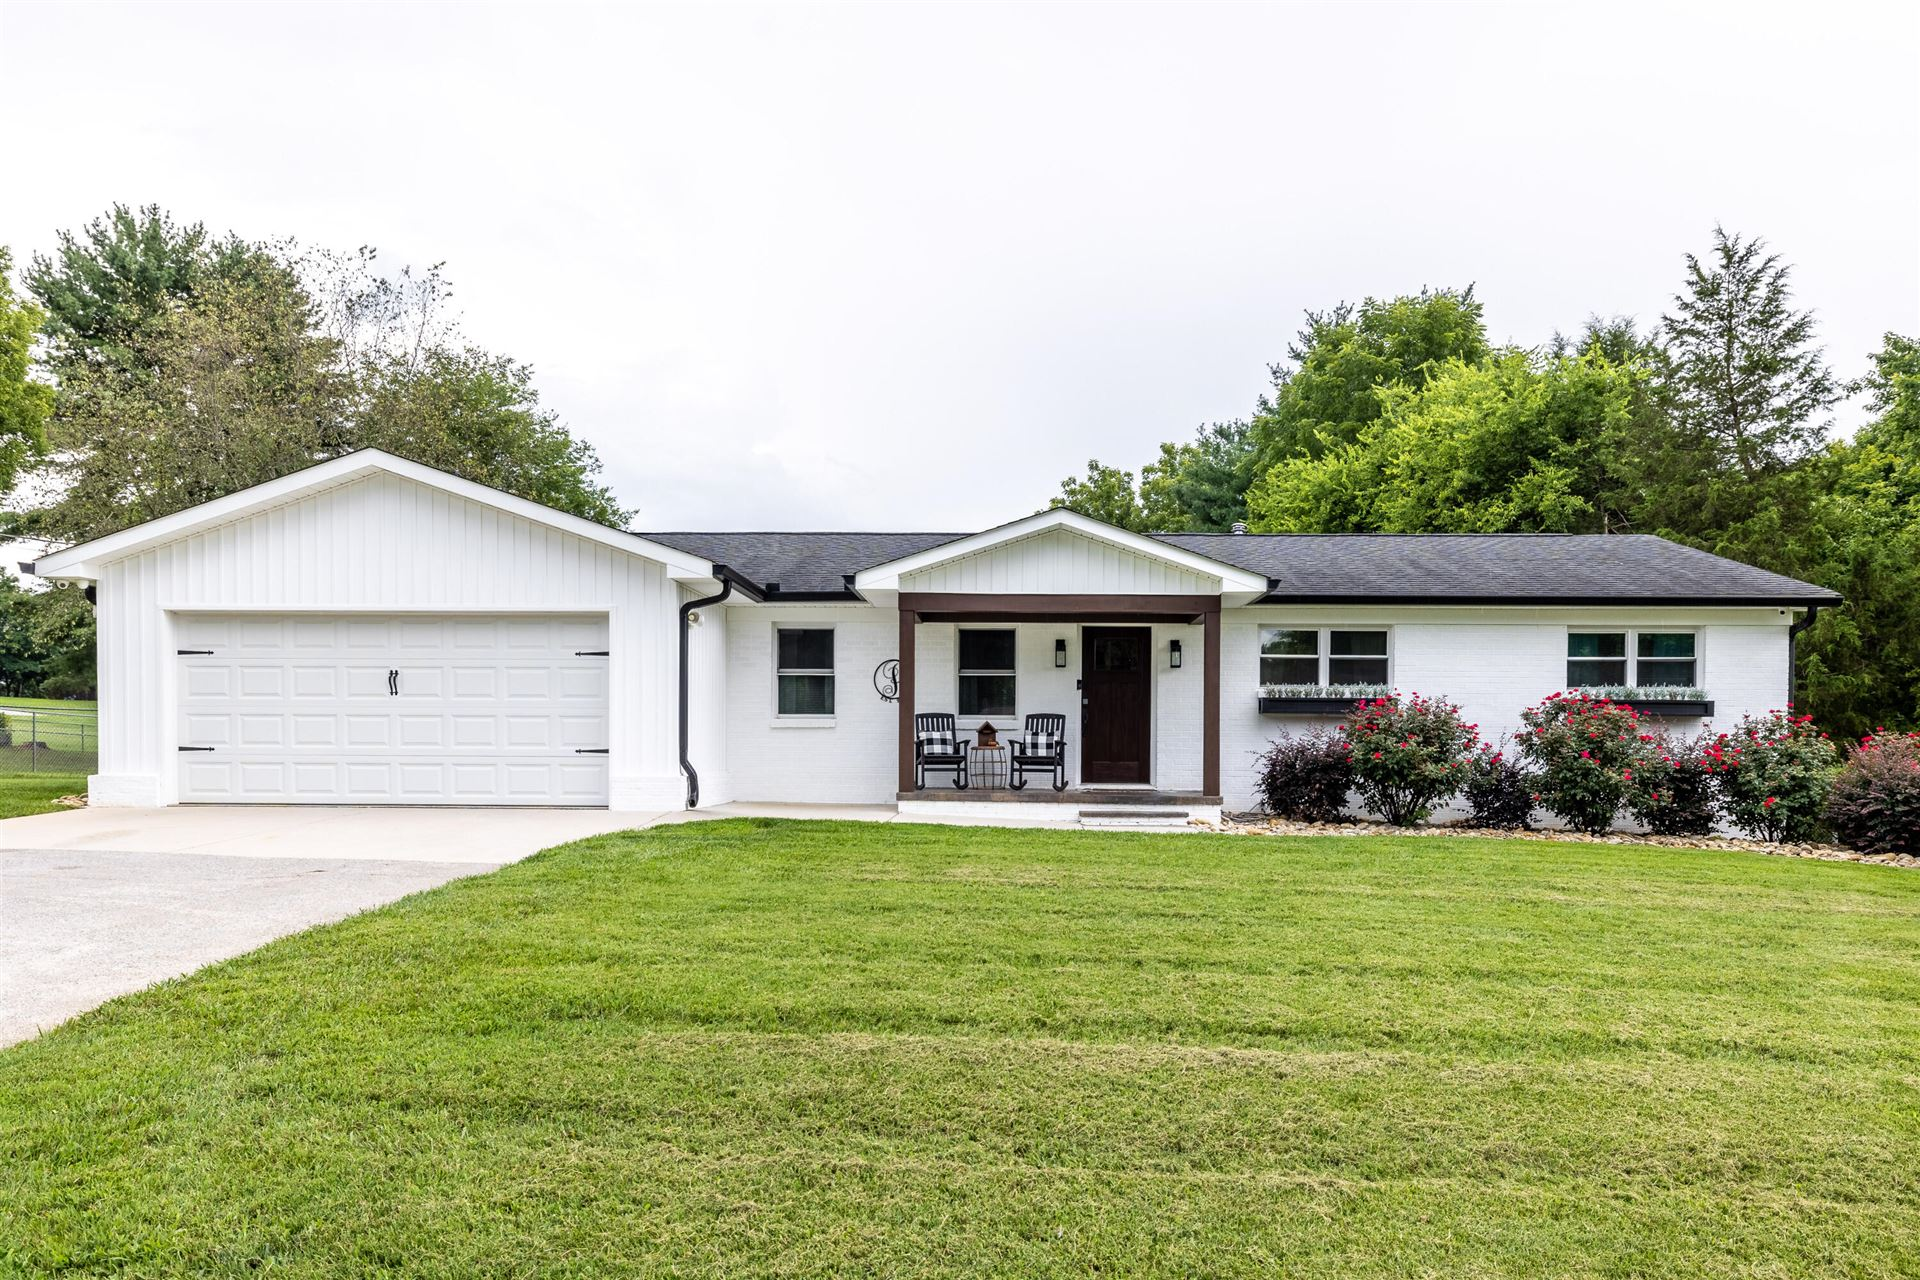 Photo of 907 Laurie St, Maryville, TN 37803 (MLS # 1161411)